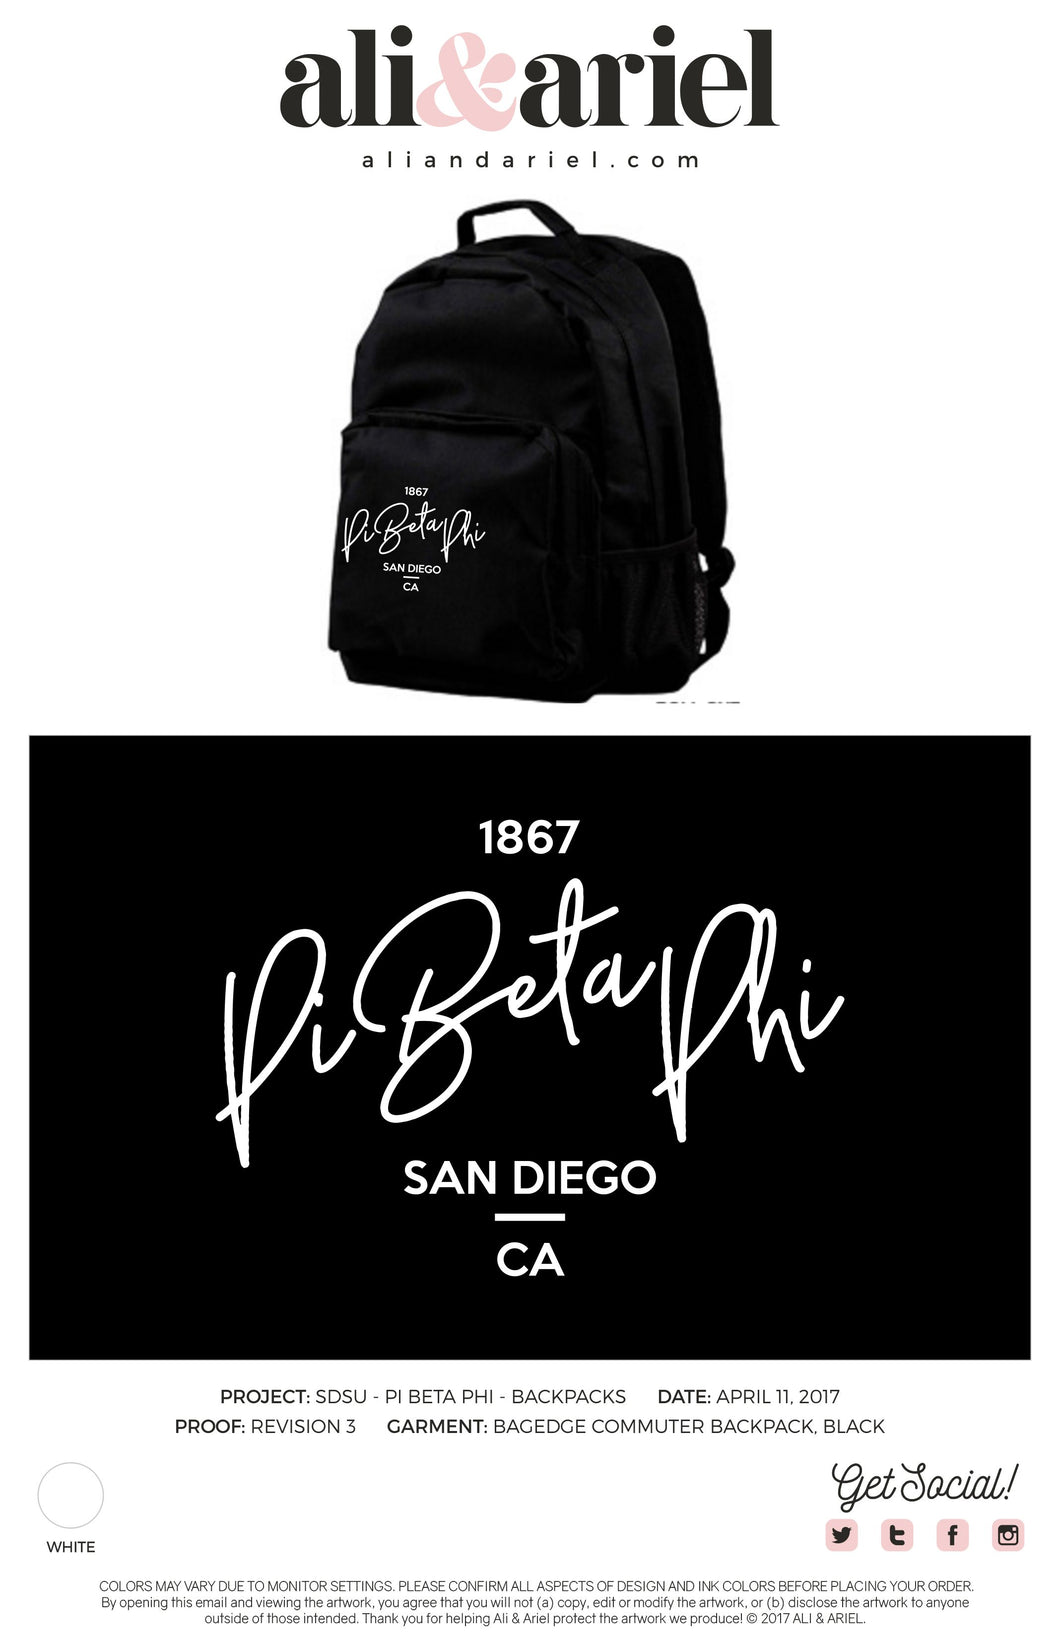 BACKPACKS. SDSU- Pi Beta Phi- Fall '20 PR Merch